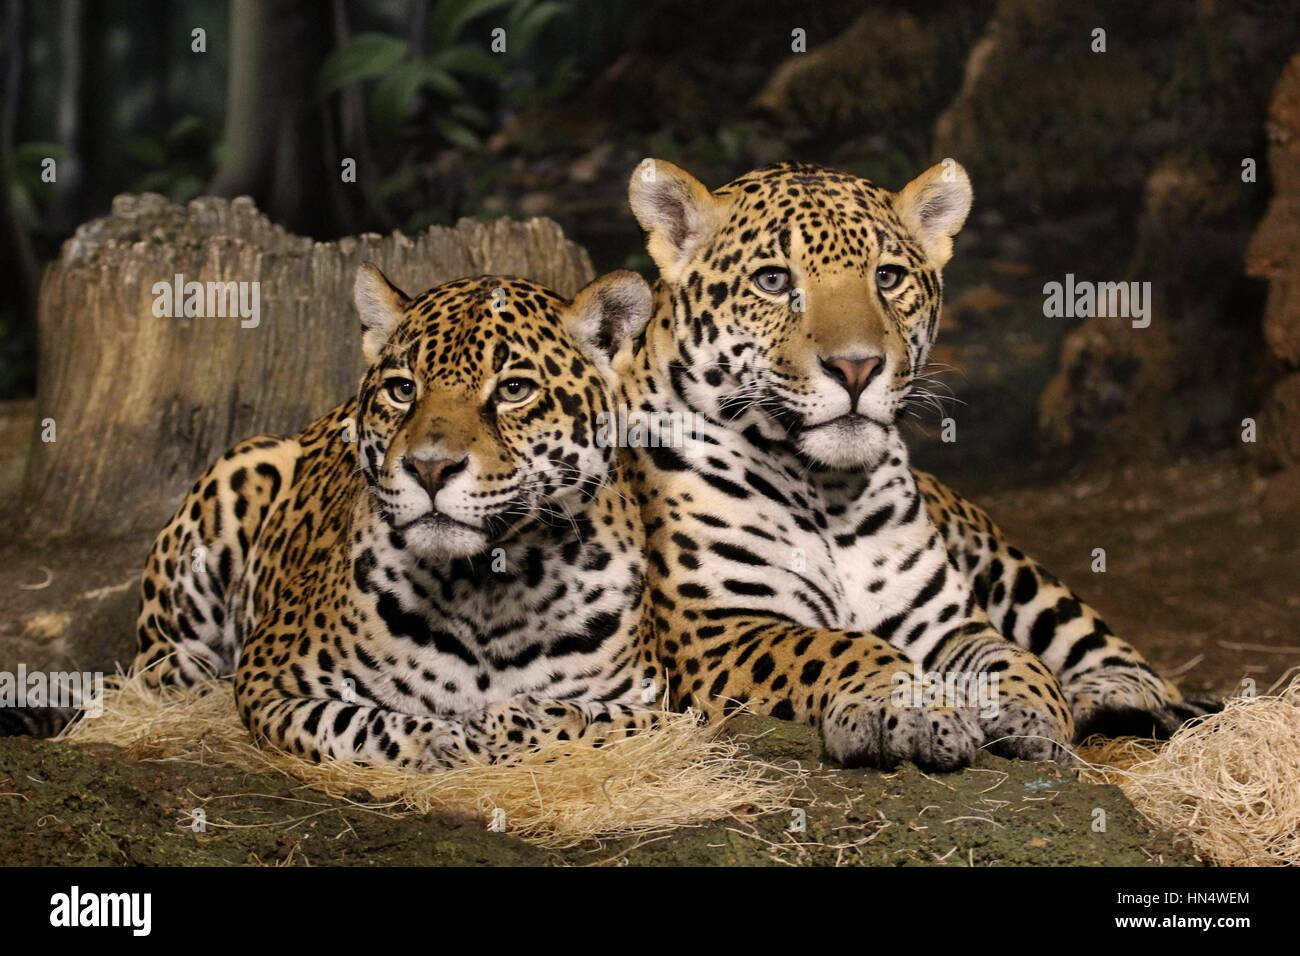 Jaguars sitting sitting side by side - Stock Image